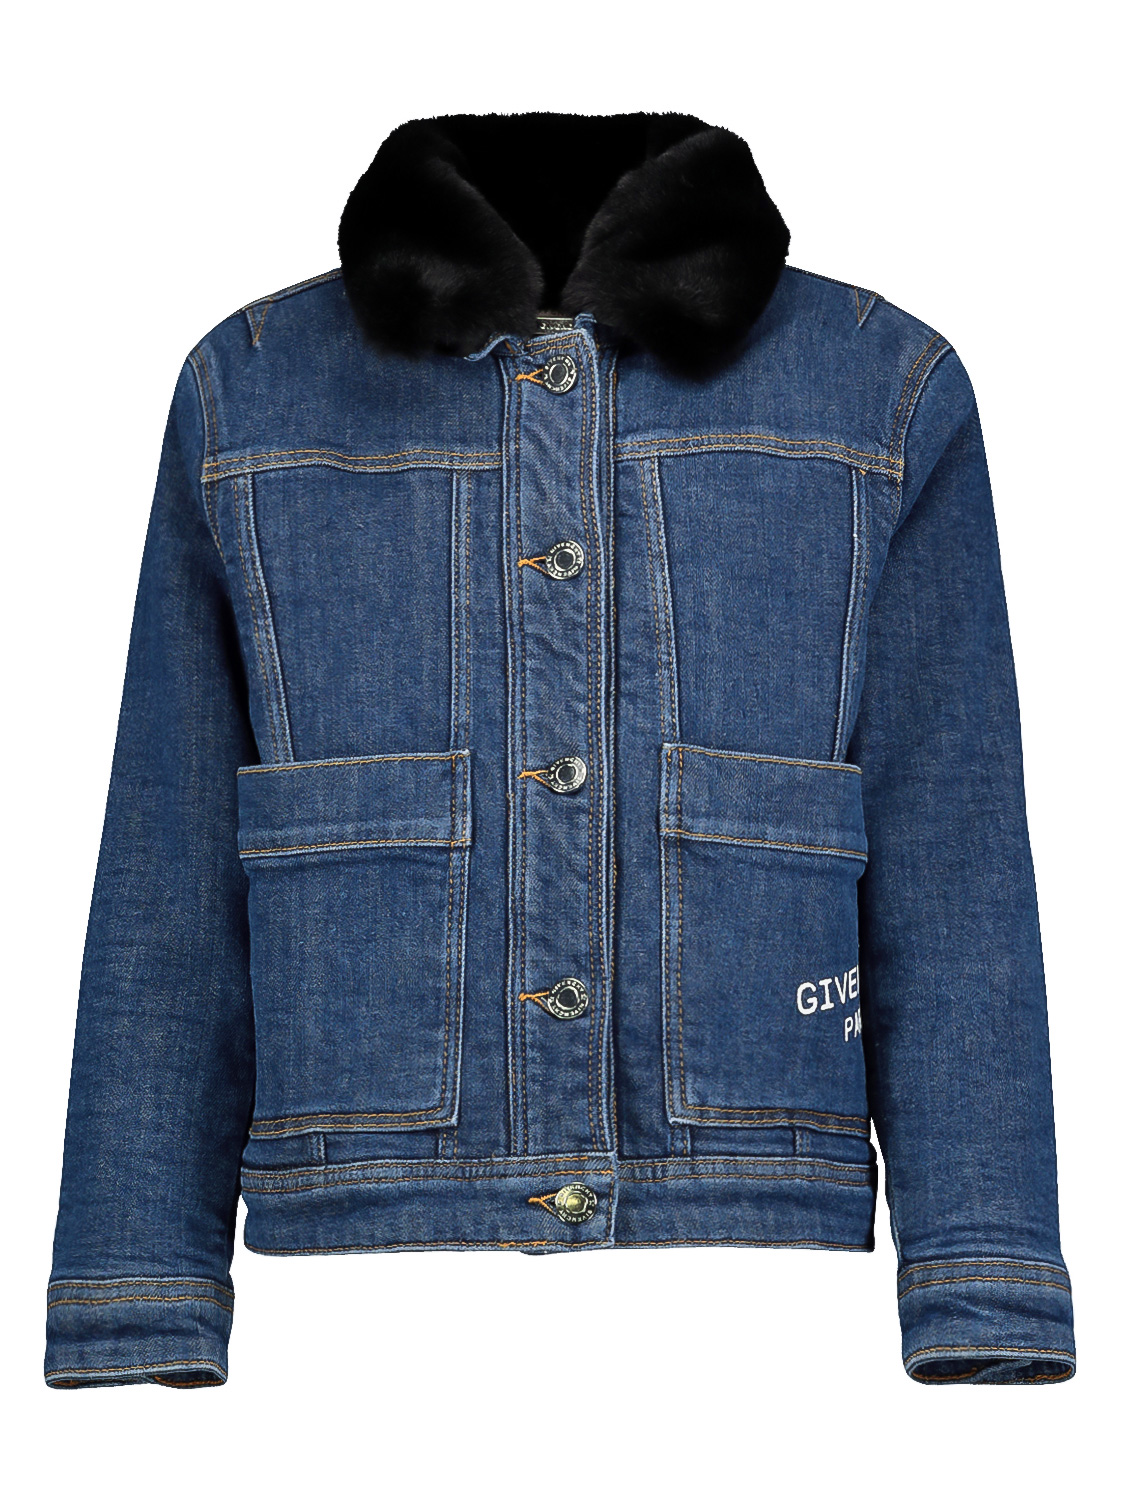 GIVENCHY KIDS JACKET FOR GIRLS